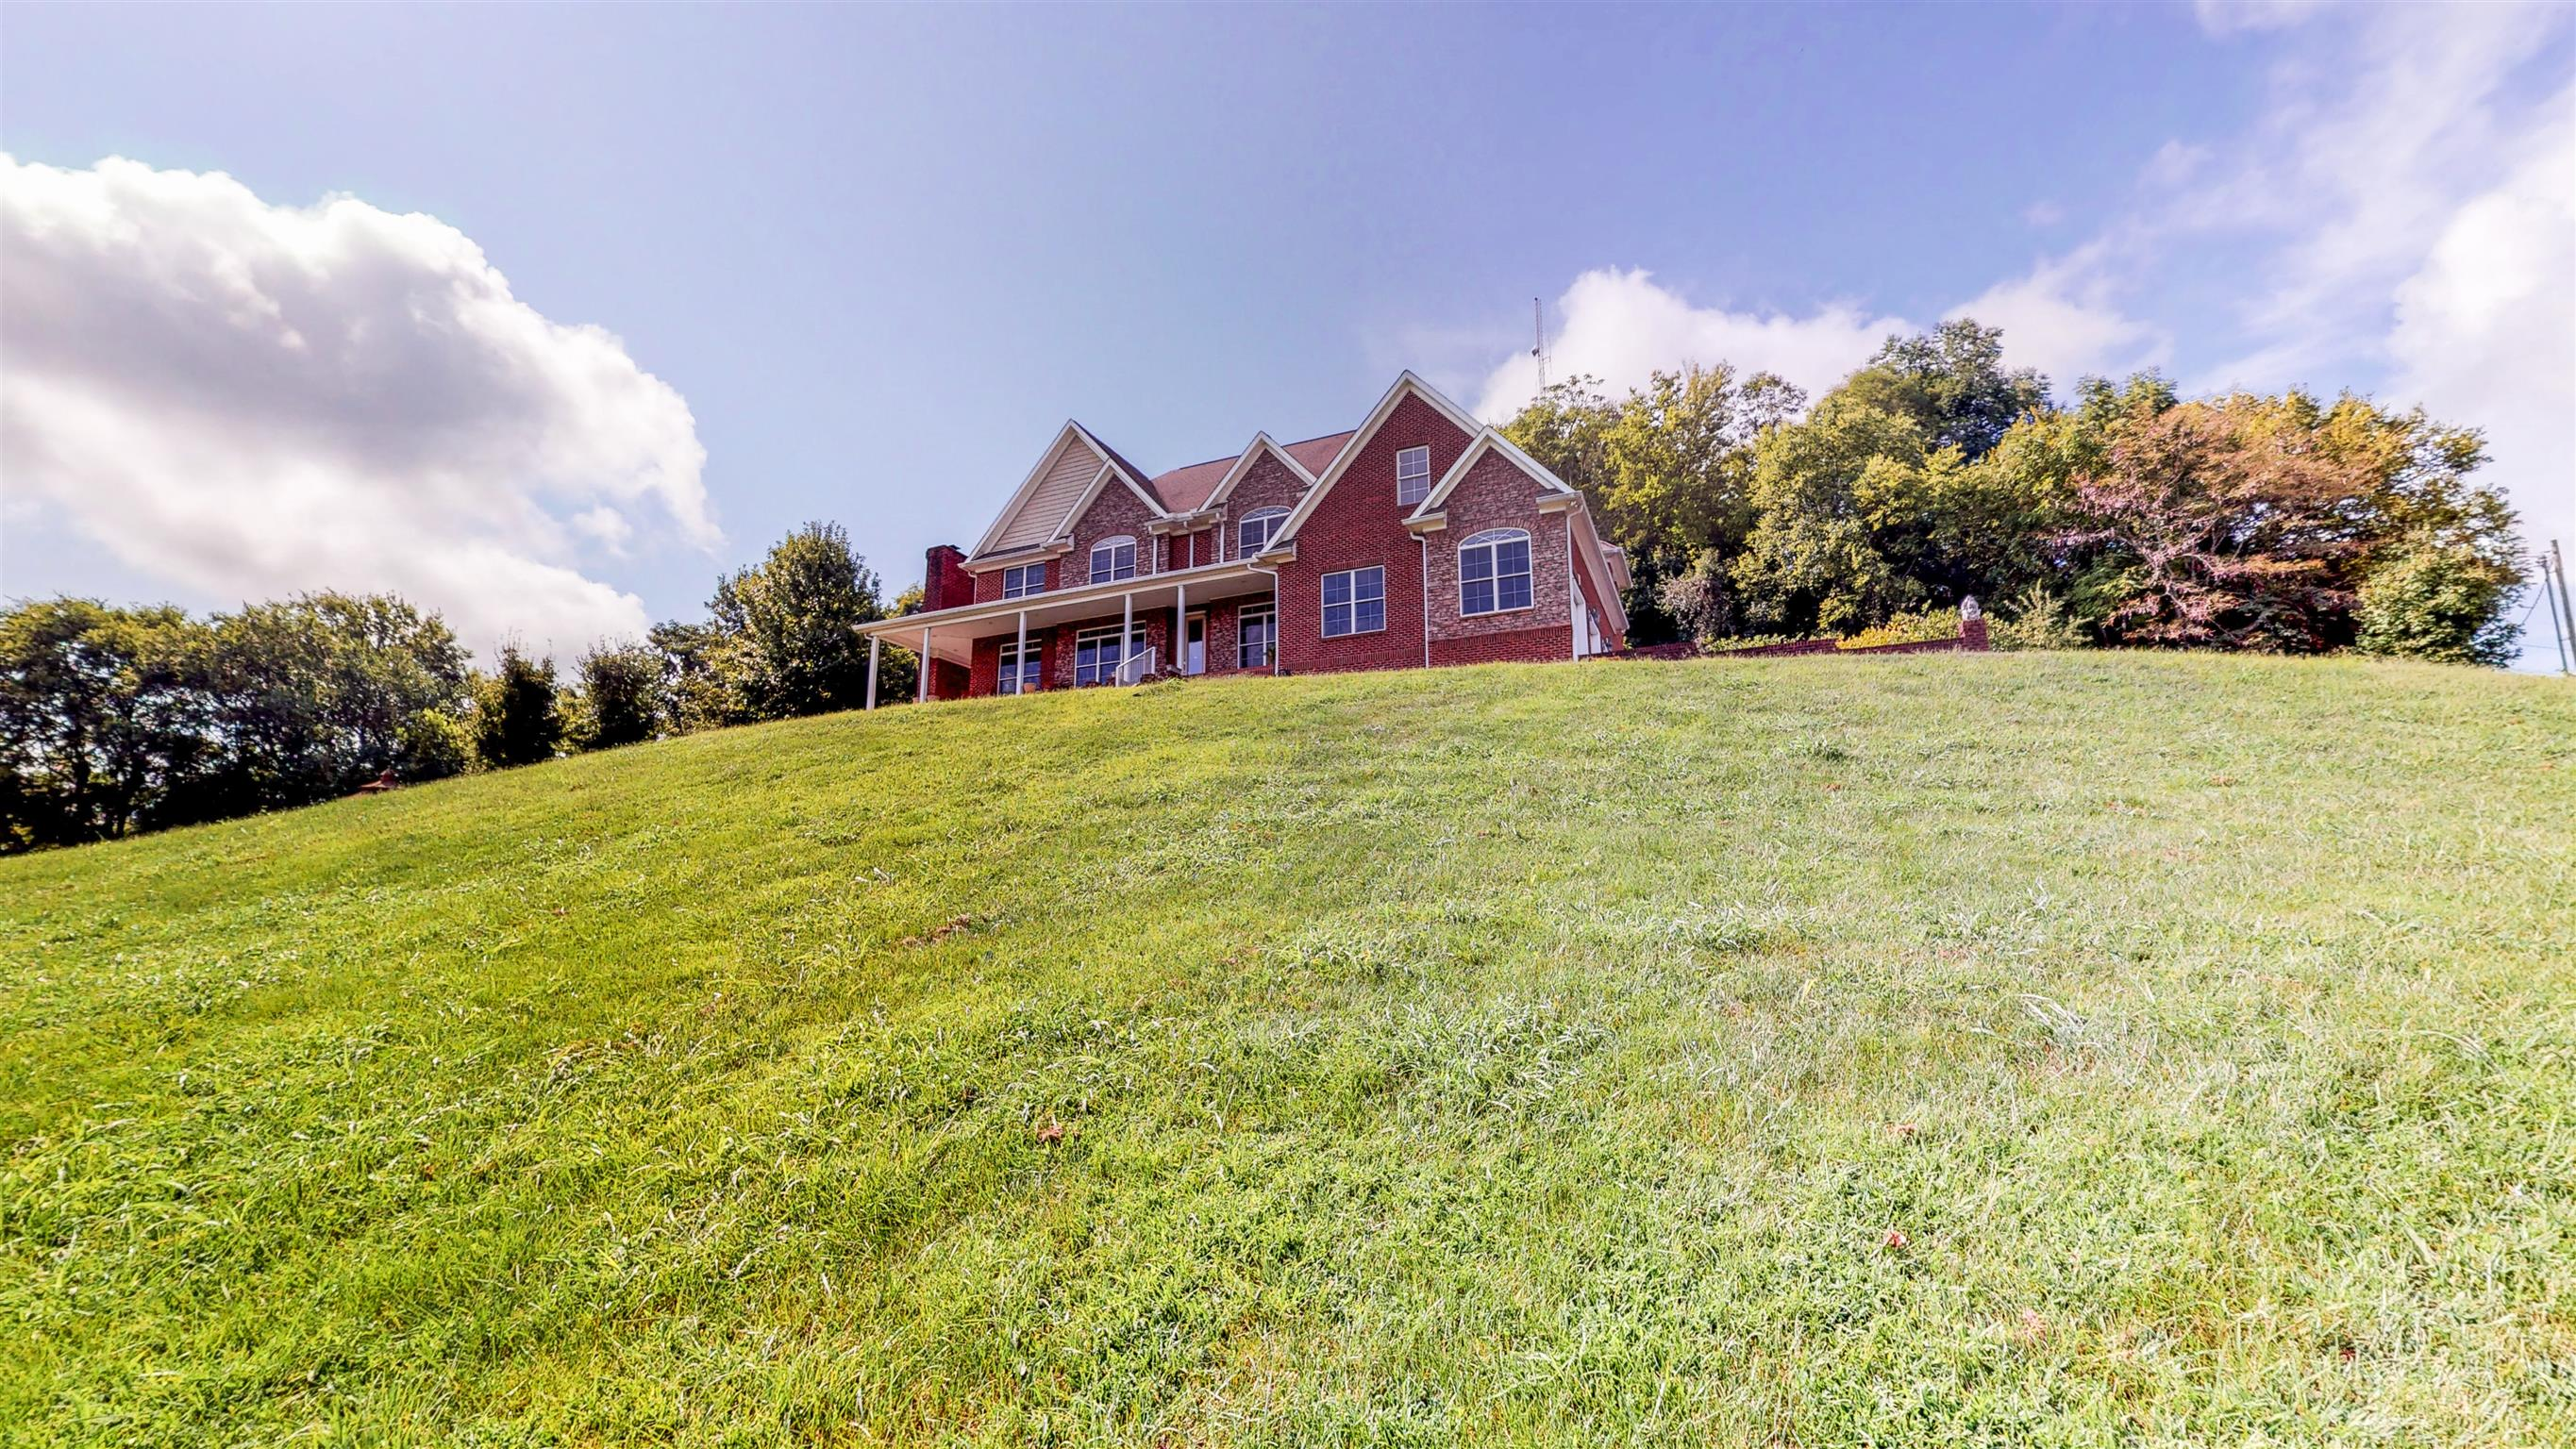 2851 Highway 231 South, Shelbyville, TN 37160 - Shelbyville, TN real estate listing